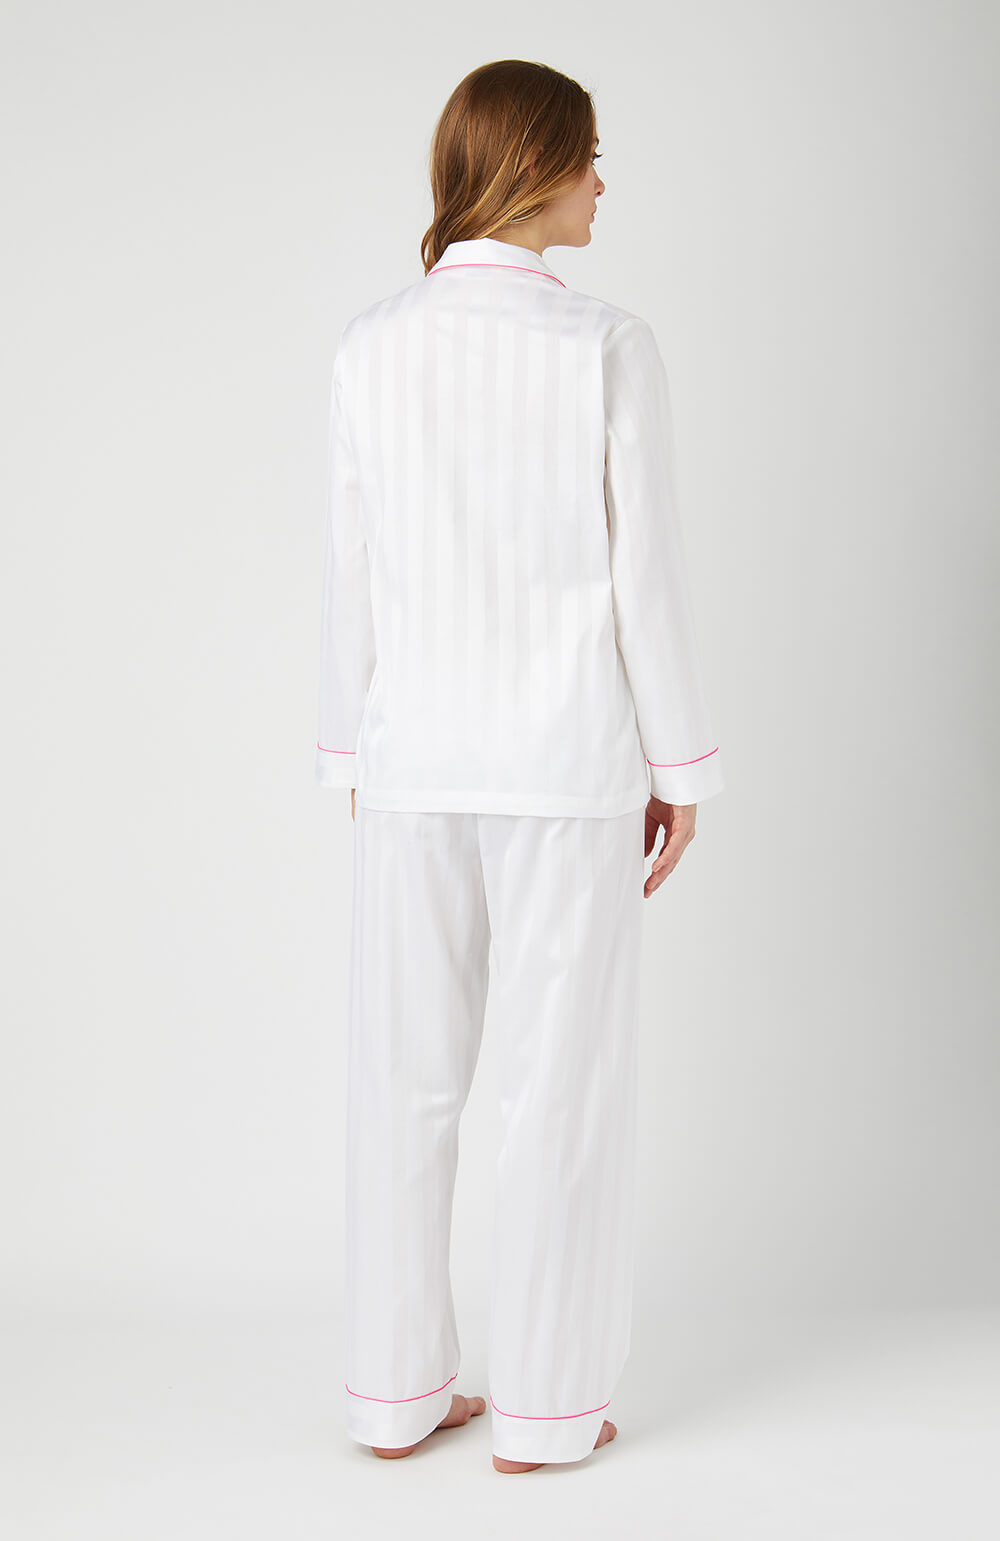 Long Sleeve White Satin Pyjamas - Back